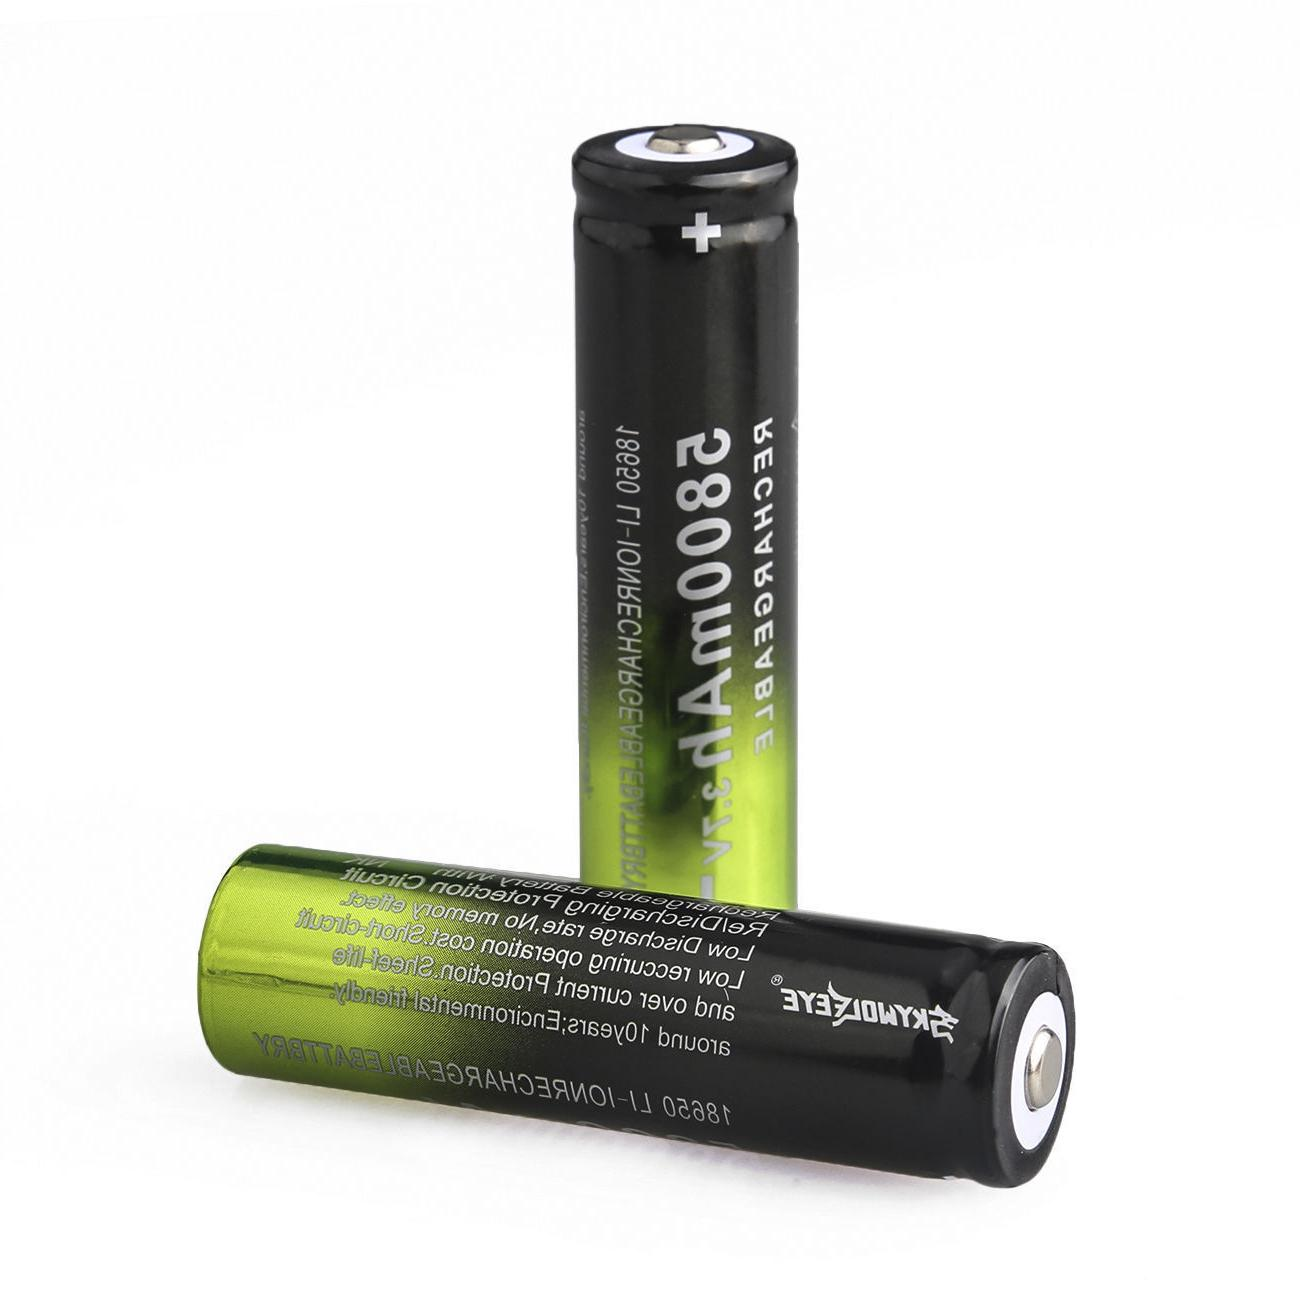 5800mAh 3.7v Rechargeable Batteries Cell Charger